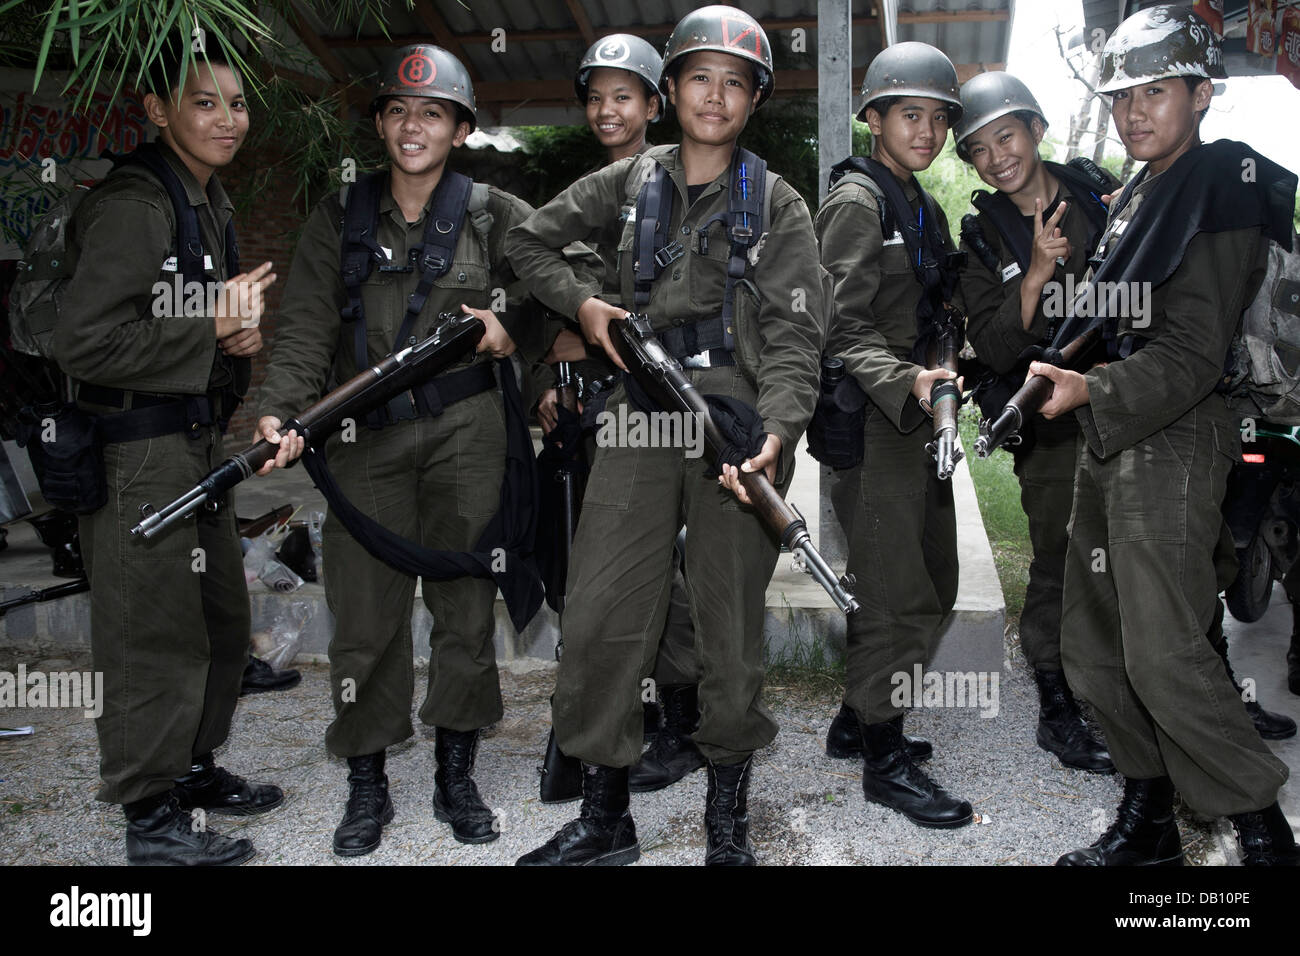 Women With Guns High Resolution Stock Photography And Images Alamy